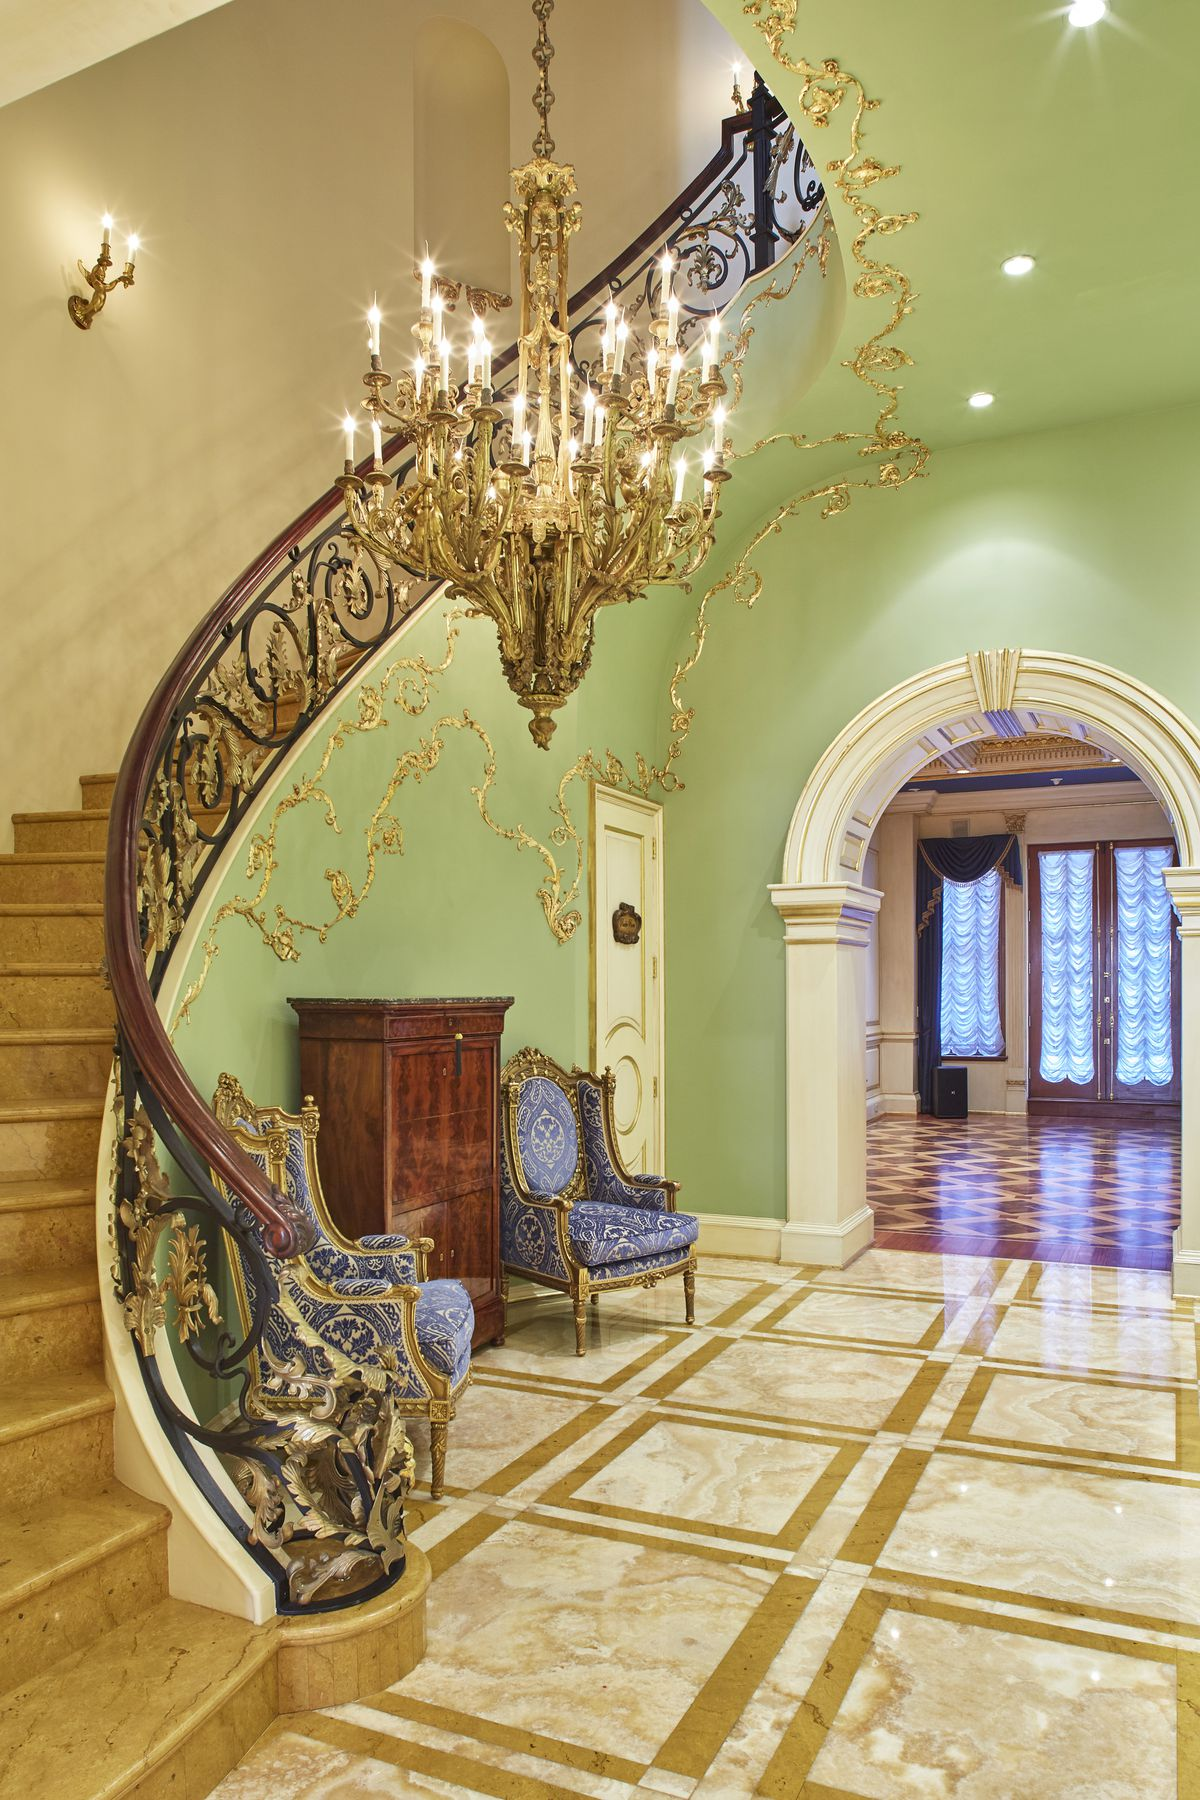 A marble staircase with elegant railings, a large chandelier next to it.